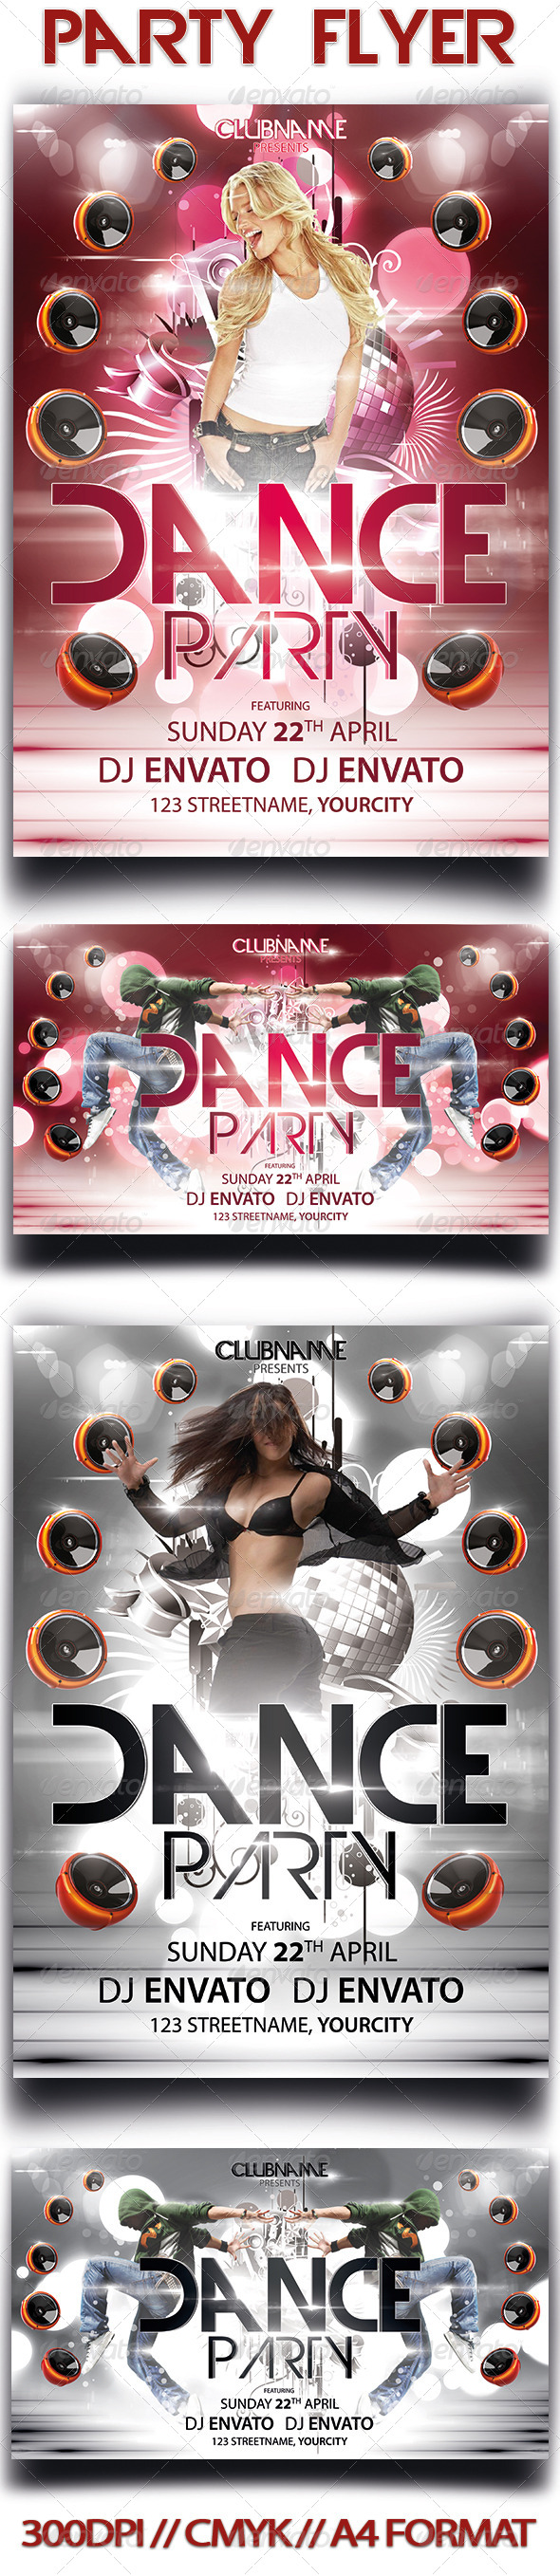 GraphicRiver Party Flyer 3776256